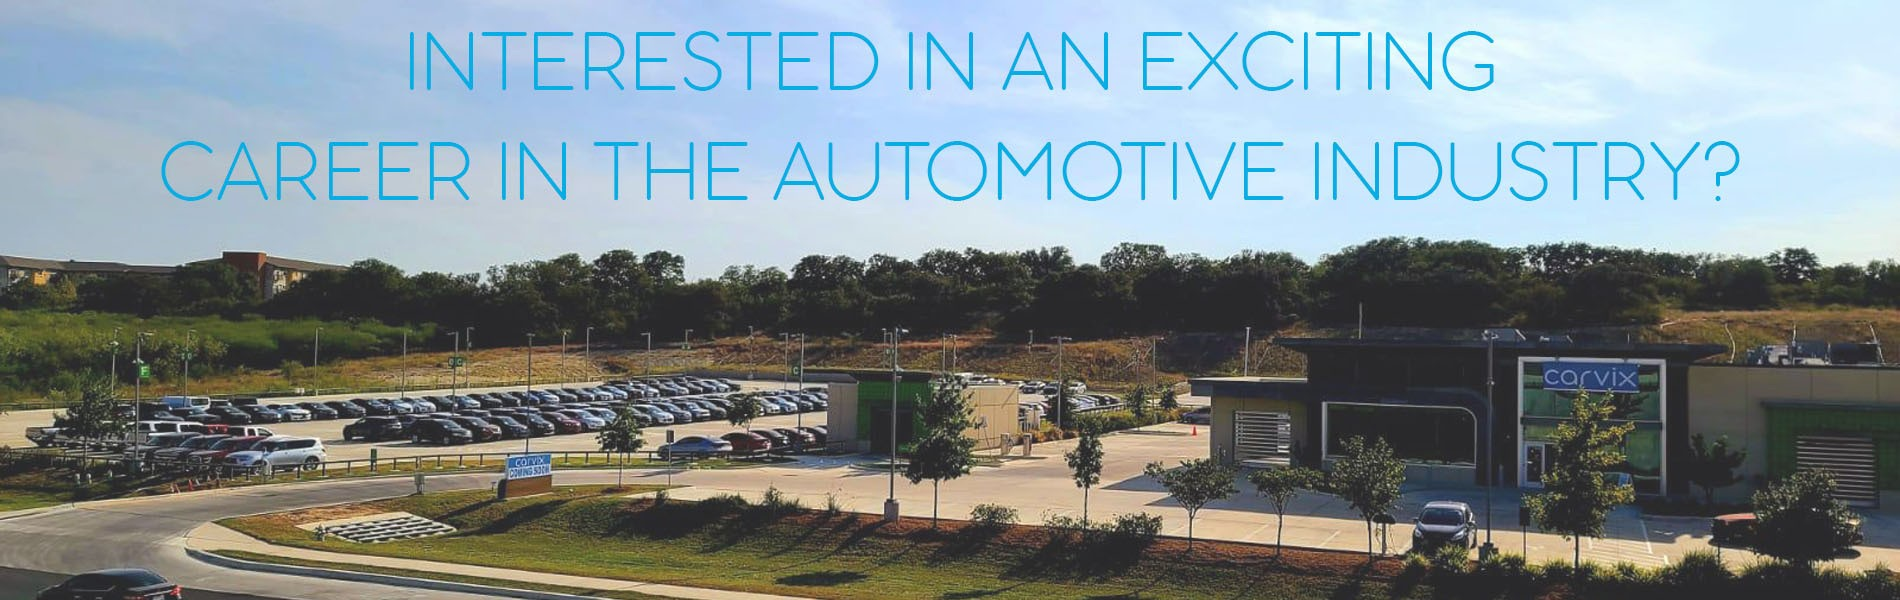 Carvix Careers - Interested in an exciting career in the automotive industry?